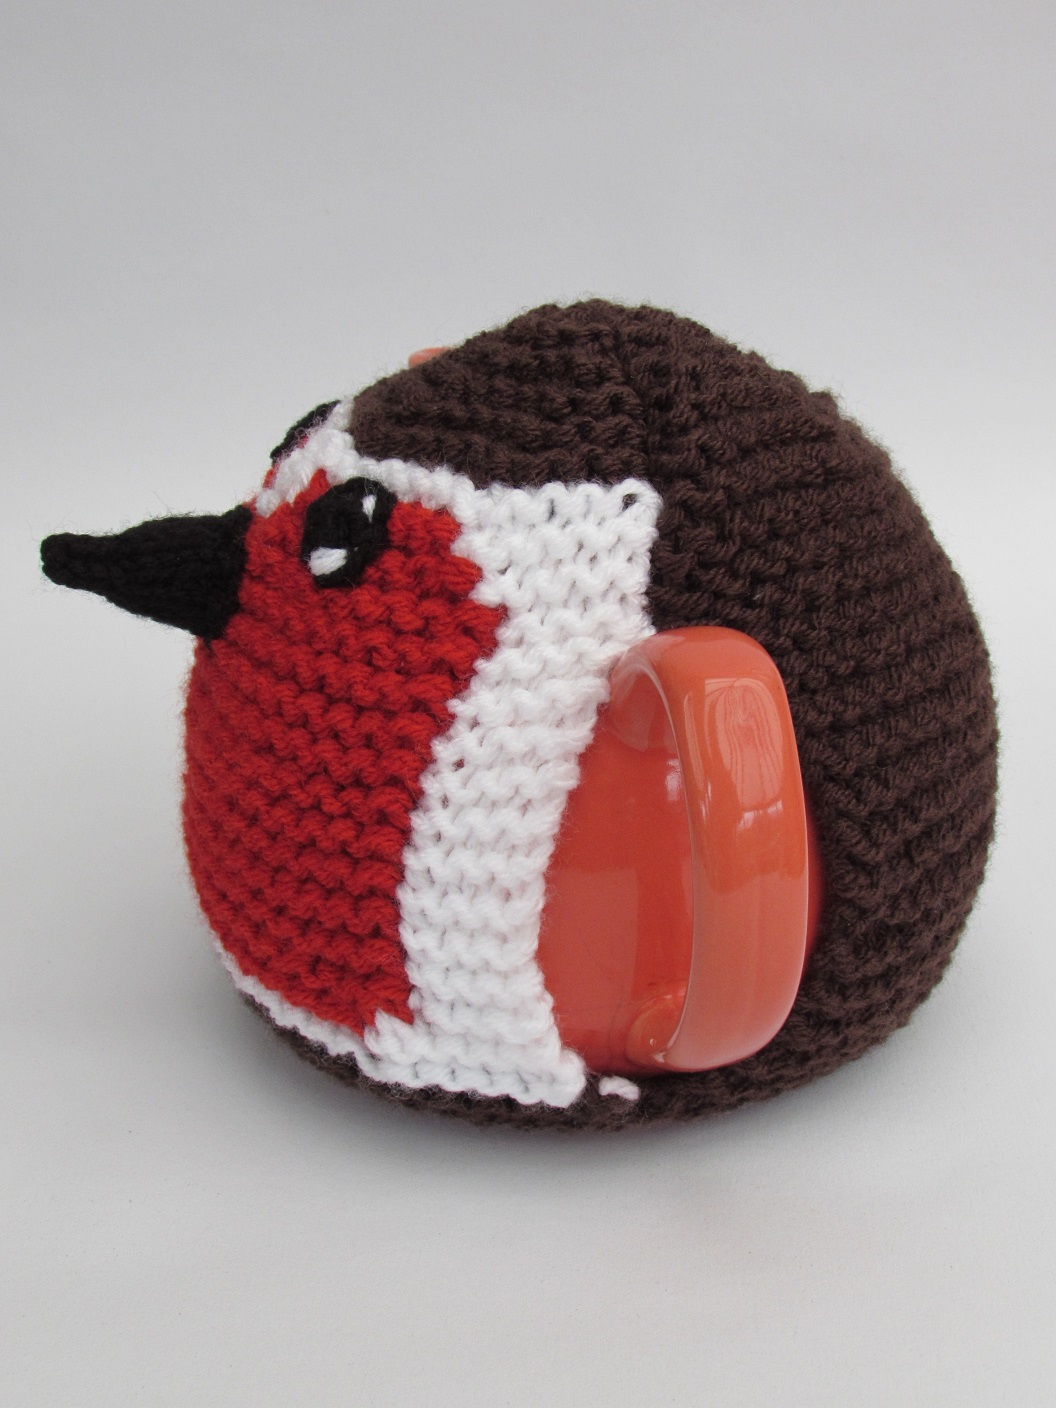 Robin Red Breast knitting pattern